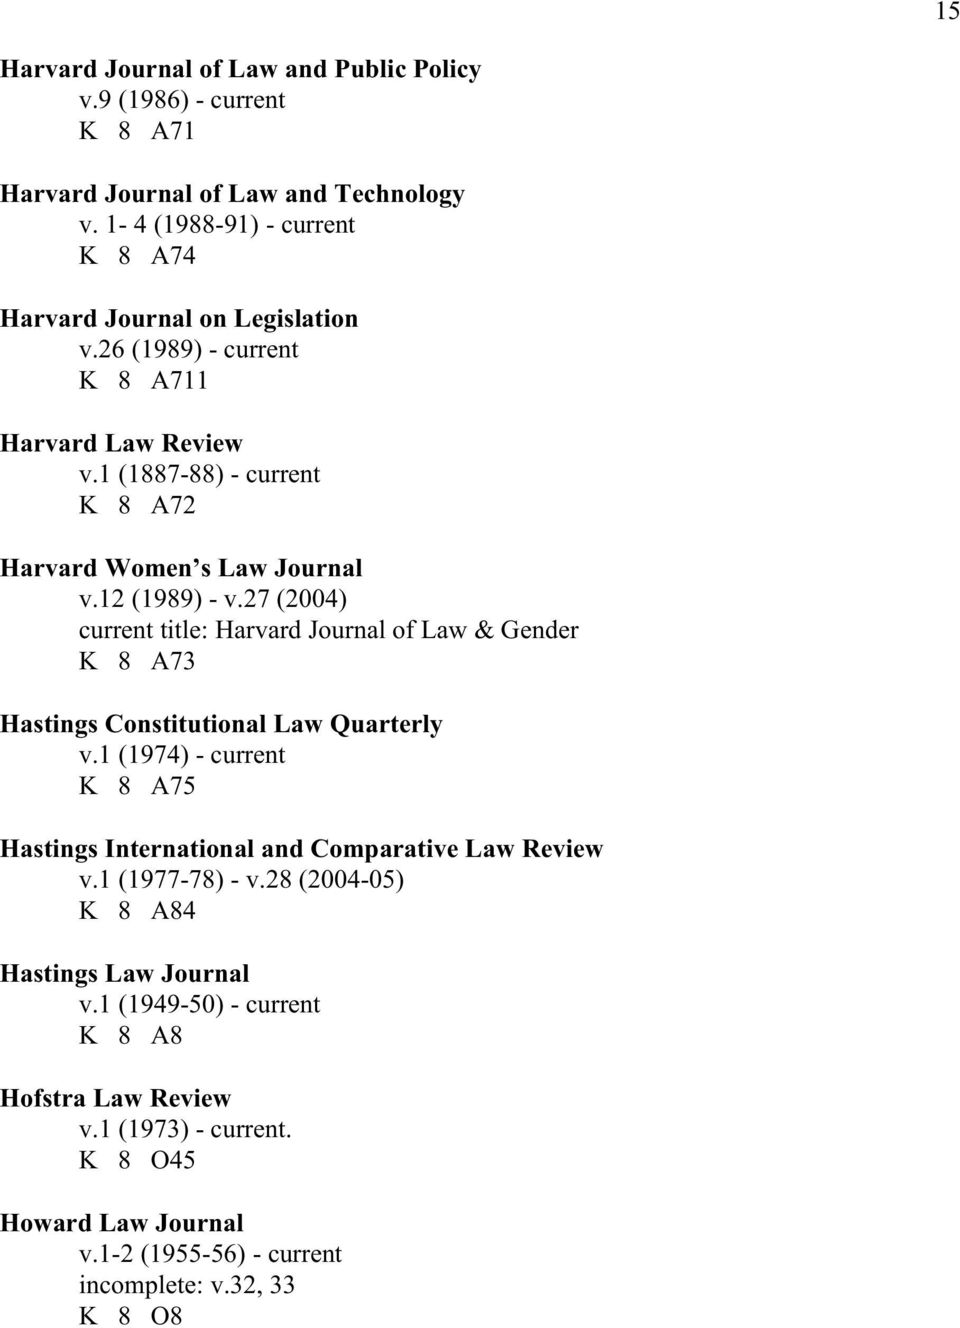 12 (1989) - v.27 (2004) current title: Harvard Journal of Law & Gender K 8 A73 Hastings Constitutional Law Quarterly v.